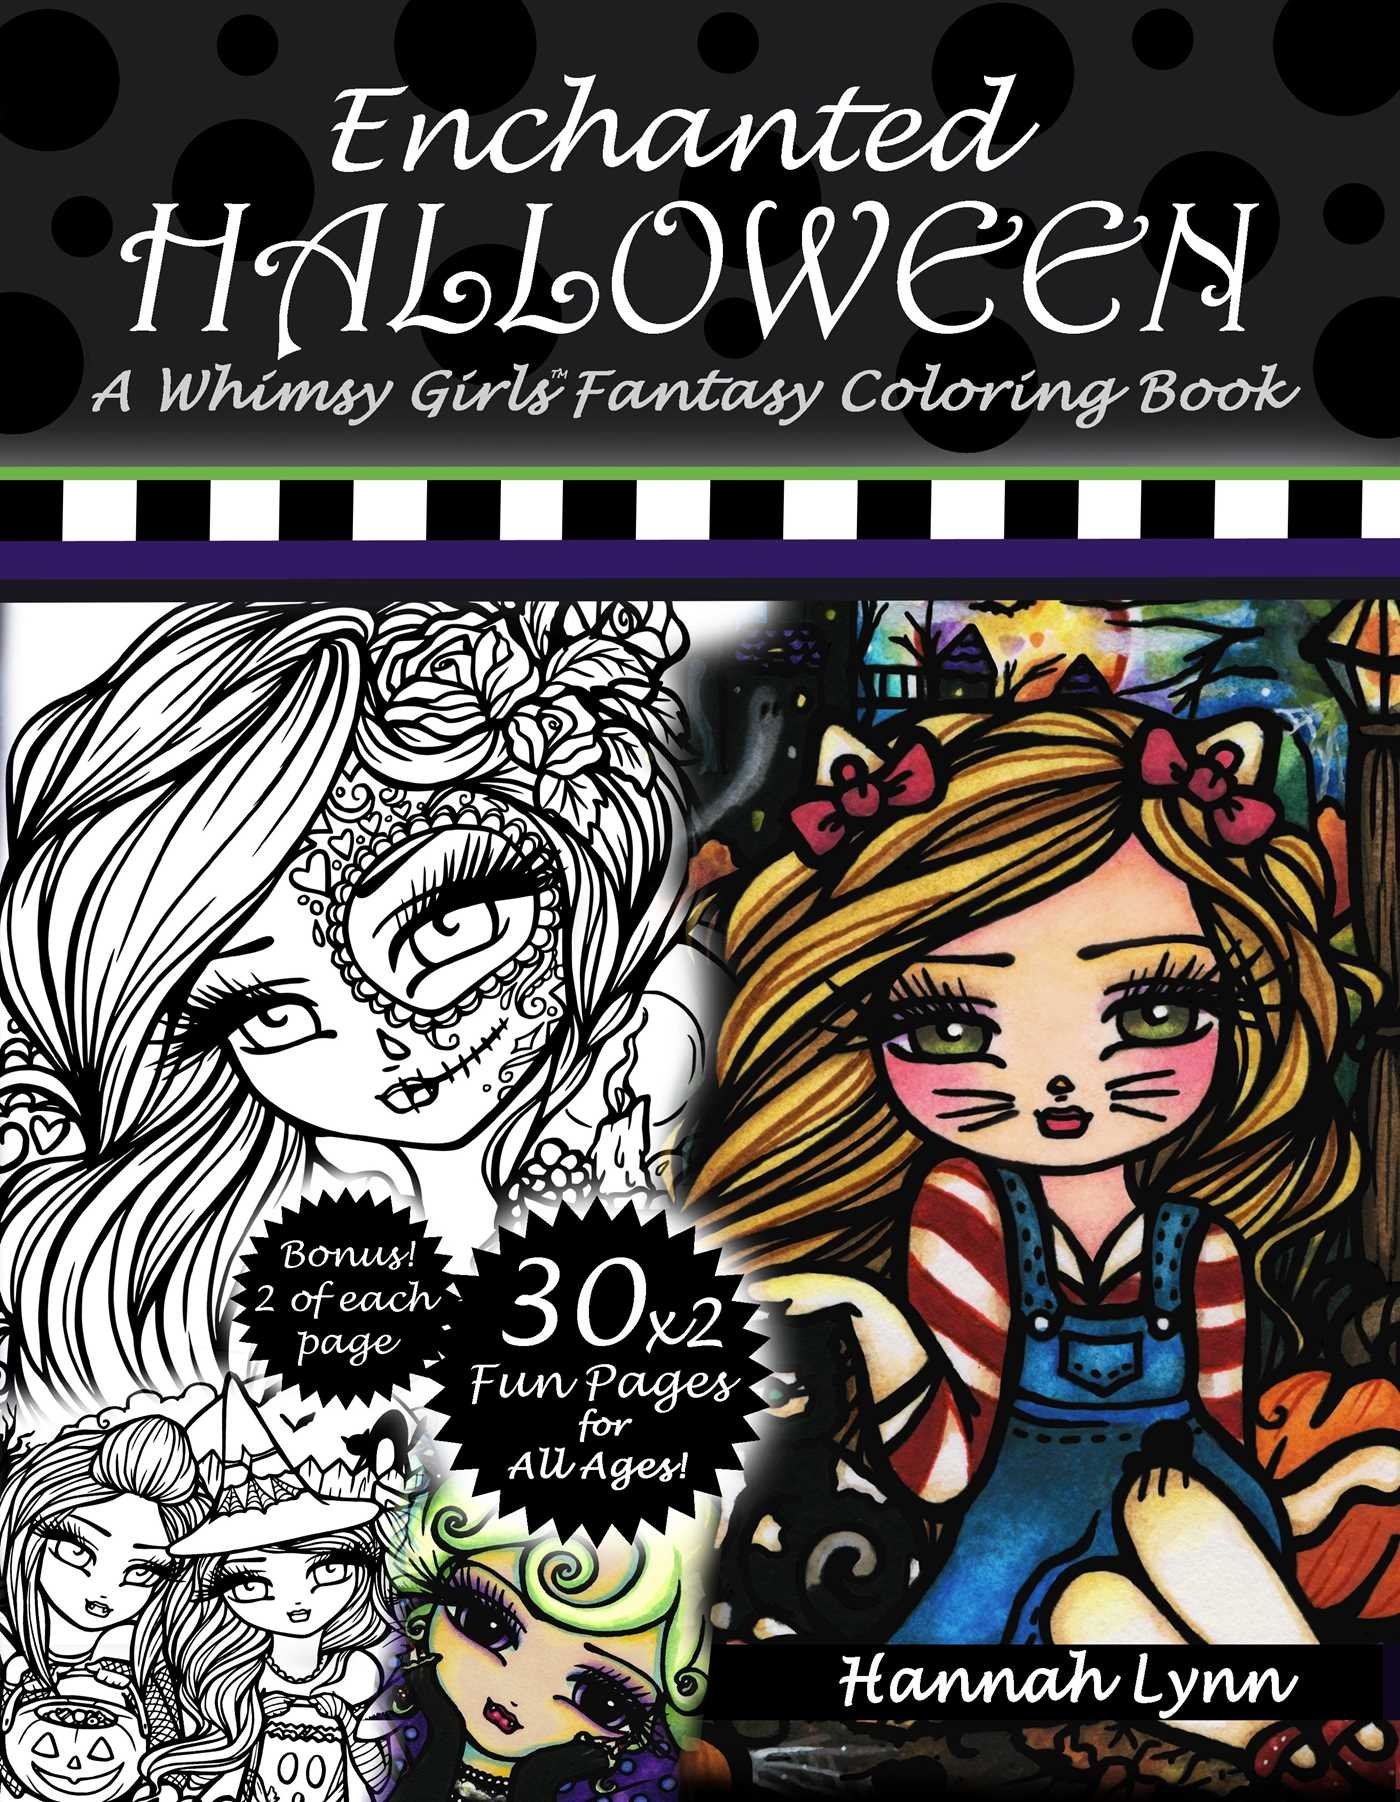 Enchanted Halloween: A Whimsy Girls Fantasy Coloring Book pdf